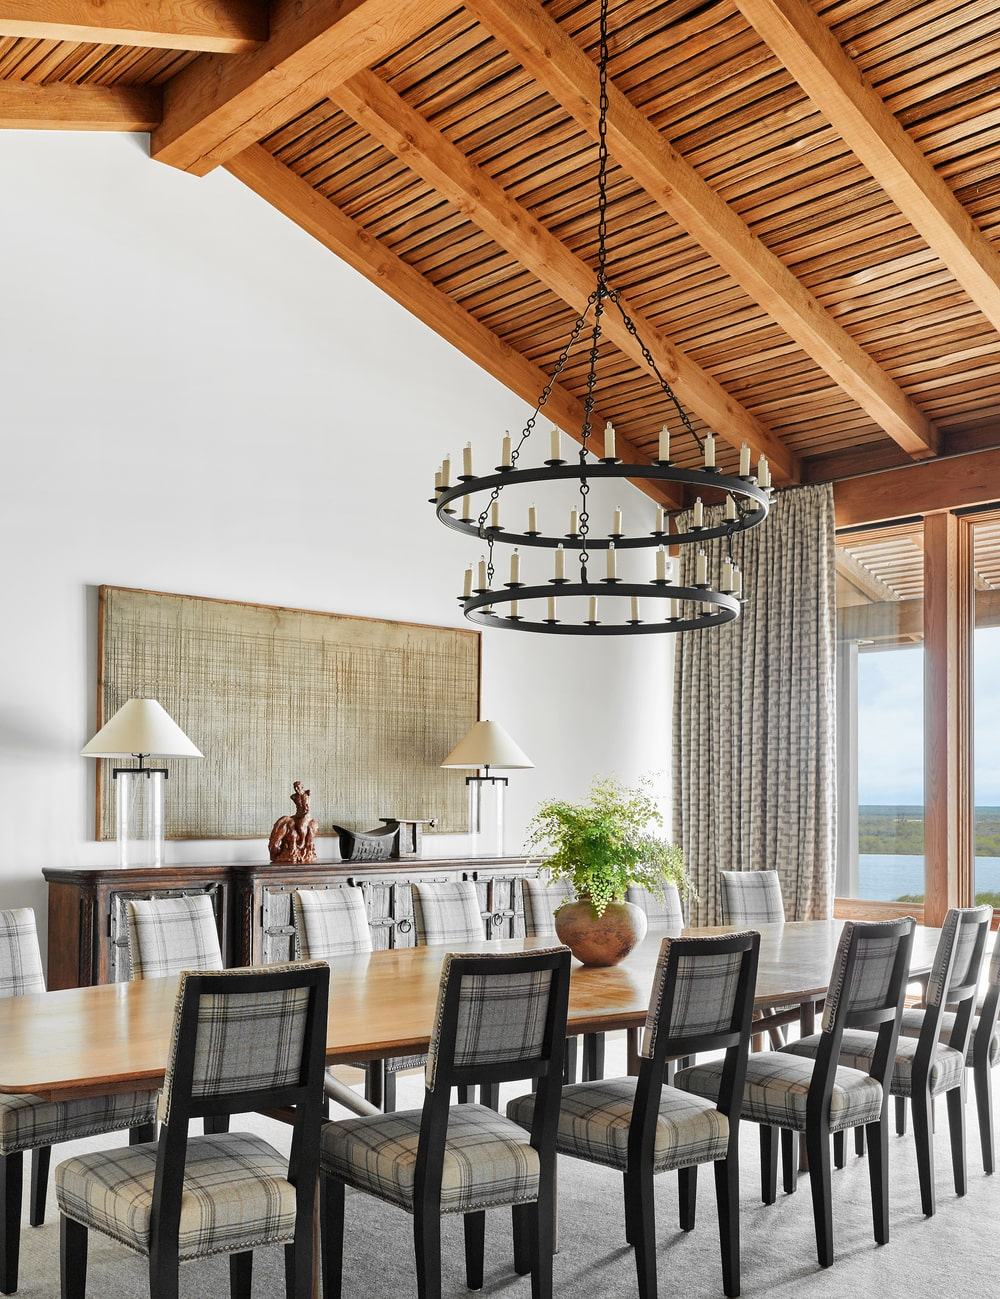 This is the dining area that has a large rectangular dining table topped with a large round two-tiered chandelier hanging from a tall cathedral ceiling with exposed wooden beams.